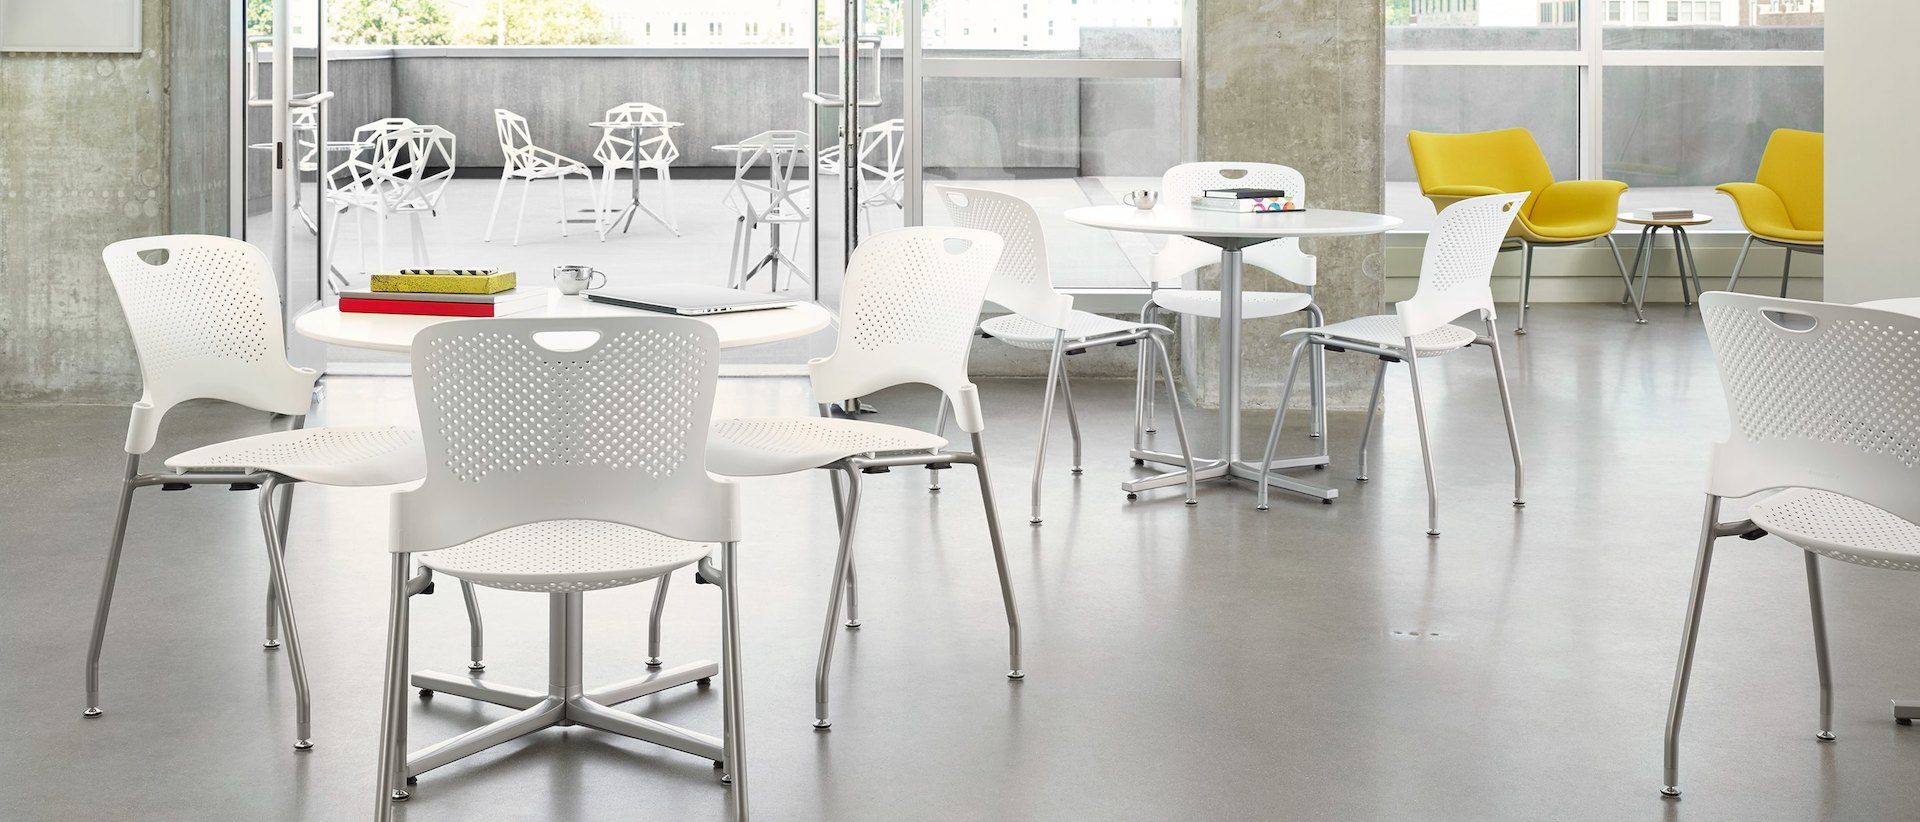 https://www.hermanmiller.com/solutions/education/applications/common-spaces/